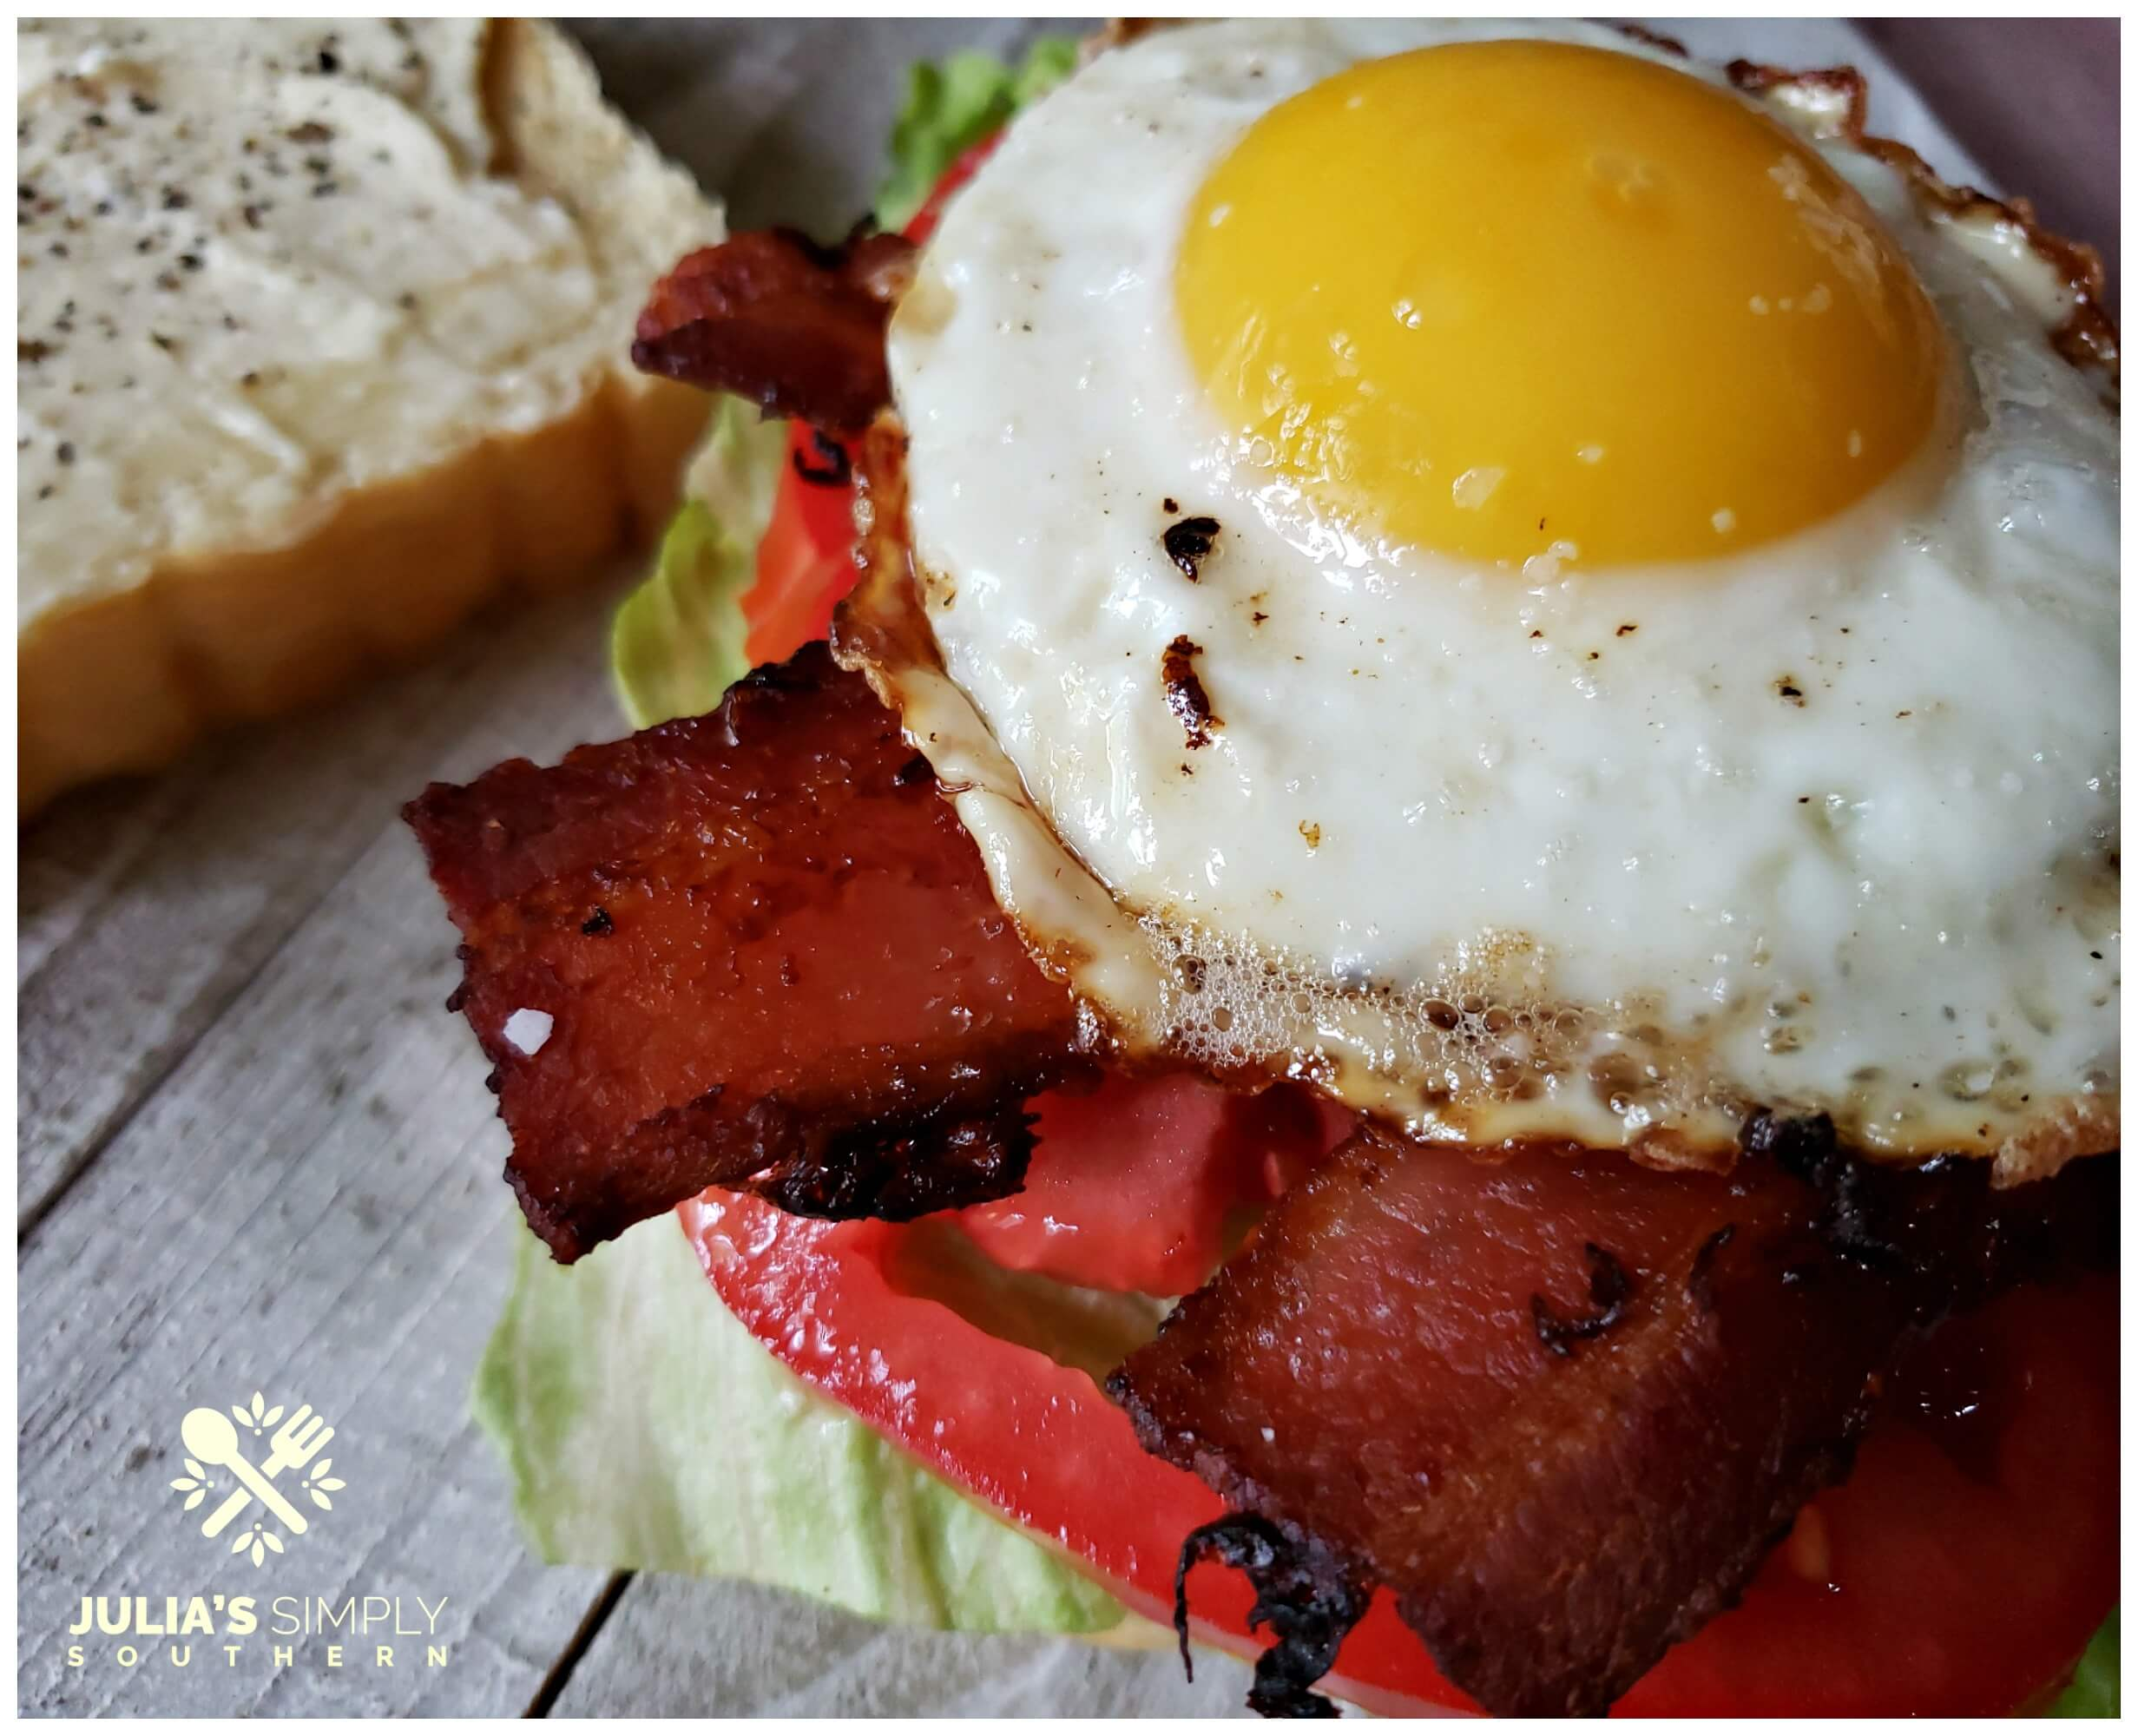 Ultimate BLT sandwich with a fried egg on top and Duke's mayonnaise seasoned with salt and pepper. It is classic delicious times ten!